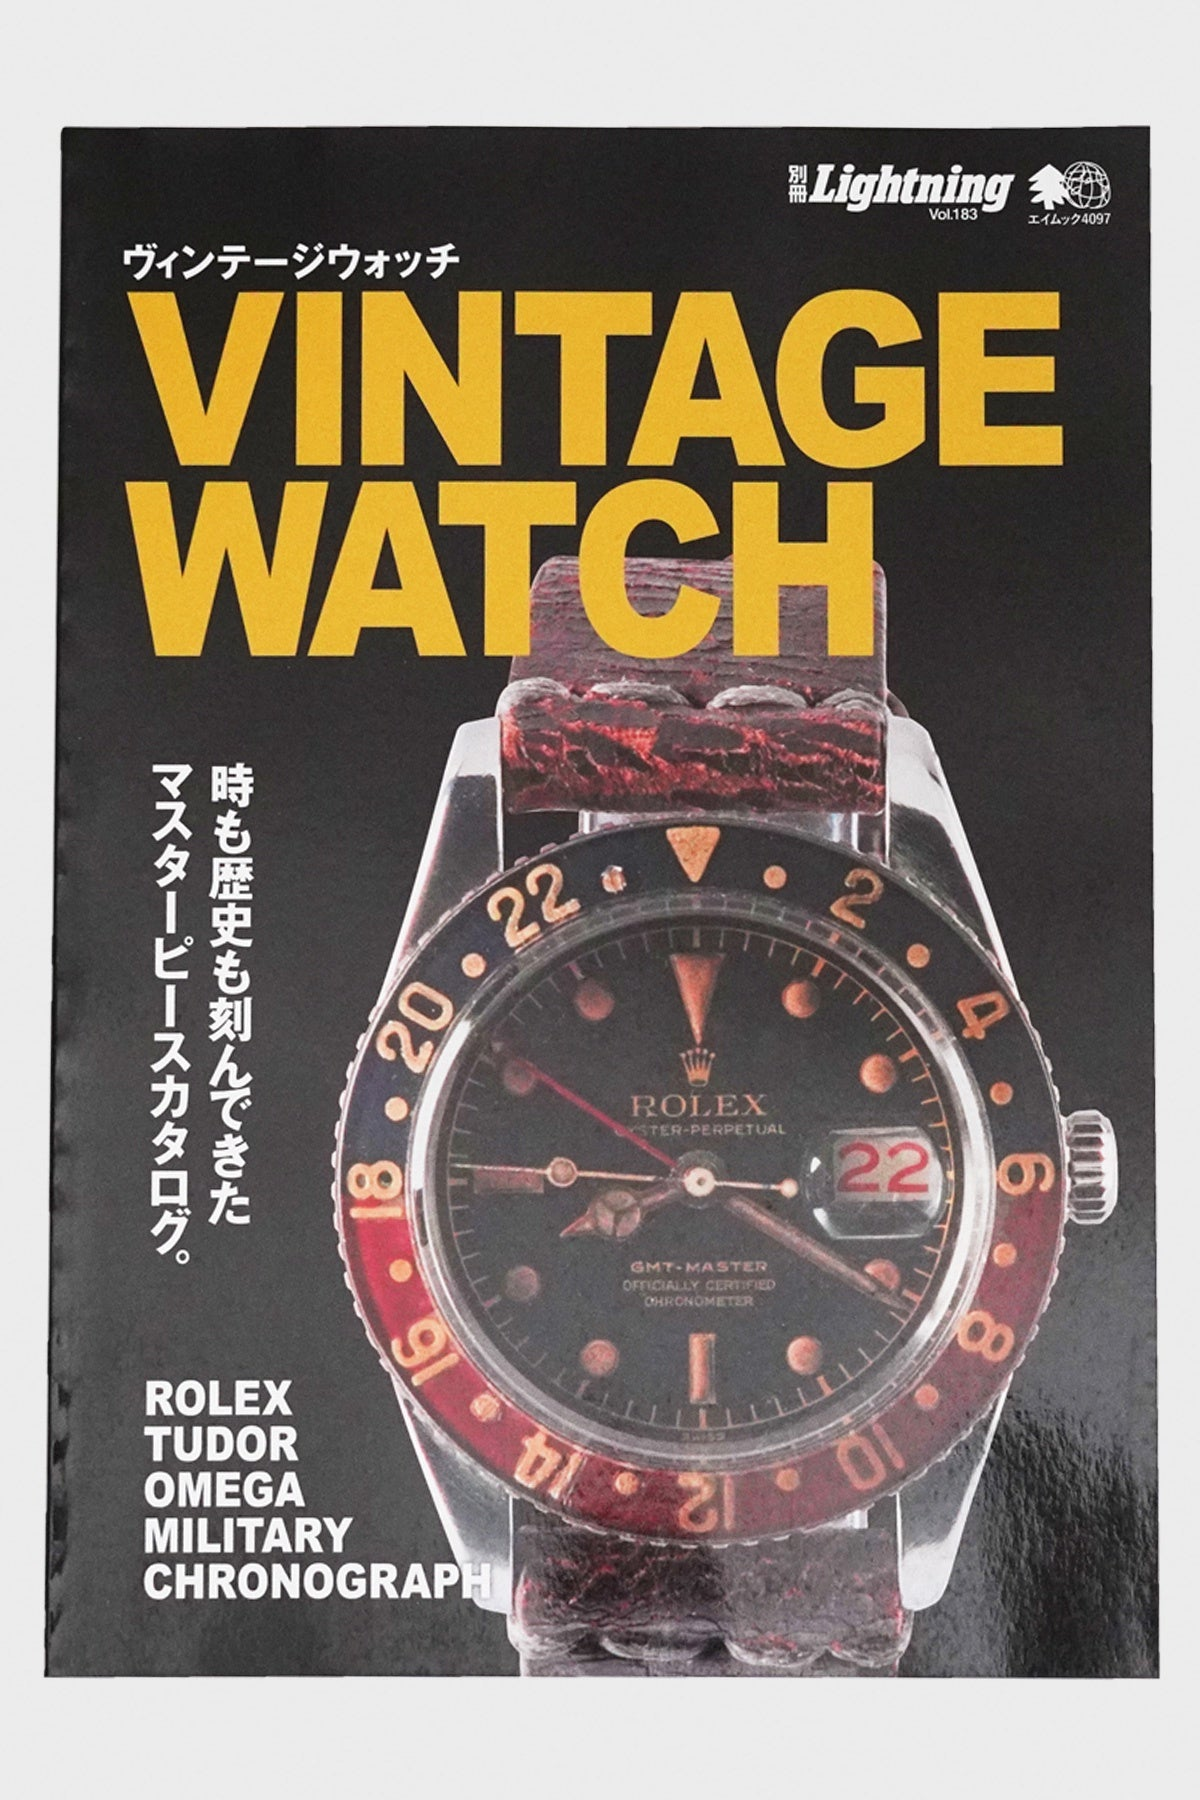 Lightning - Vintage Watch vol. 183 - Canoe Club